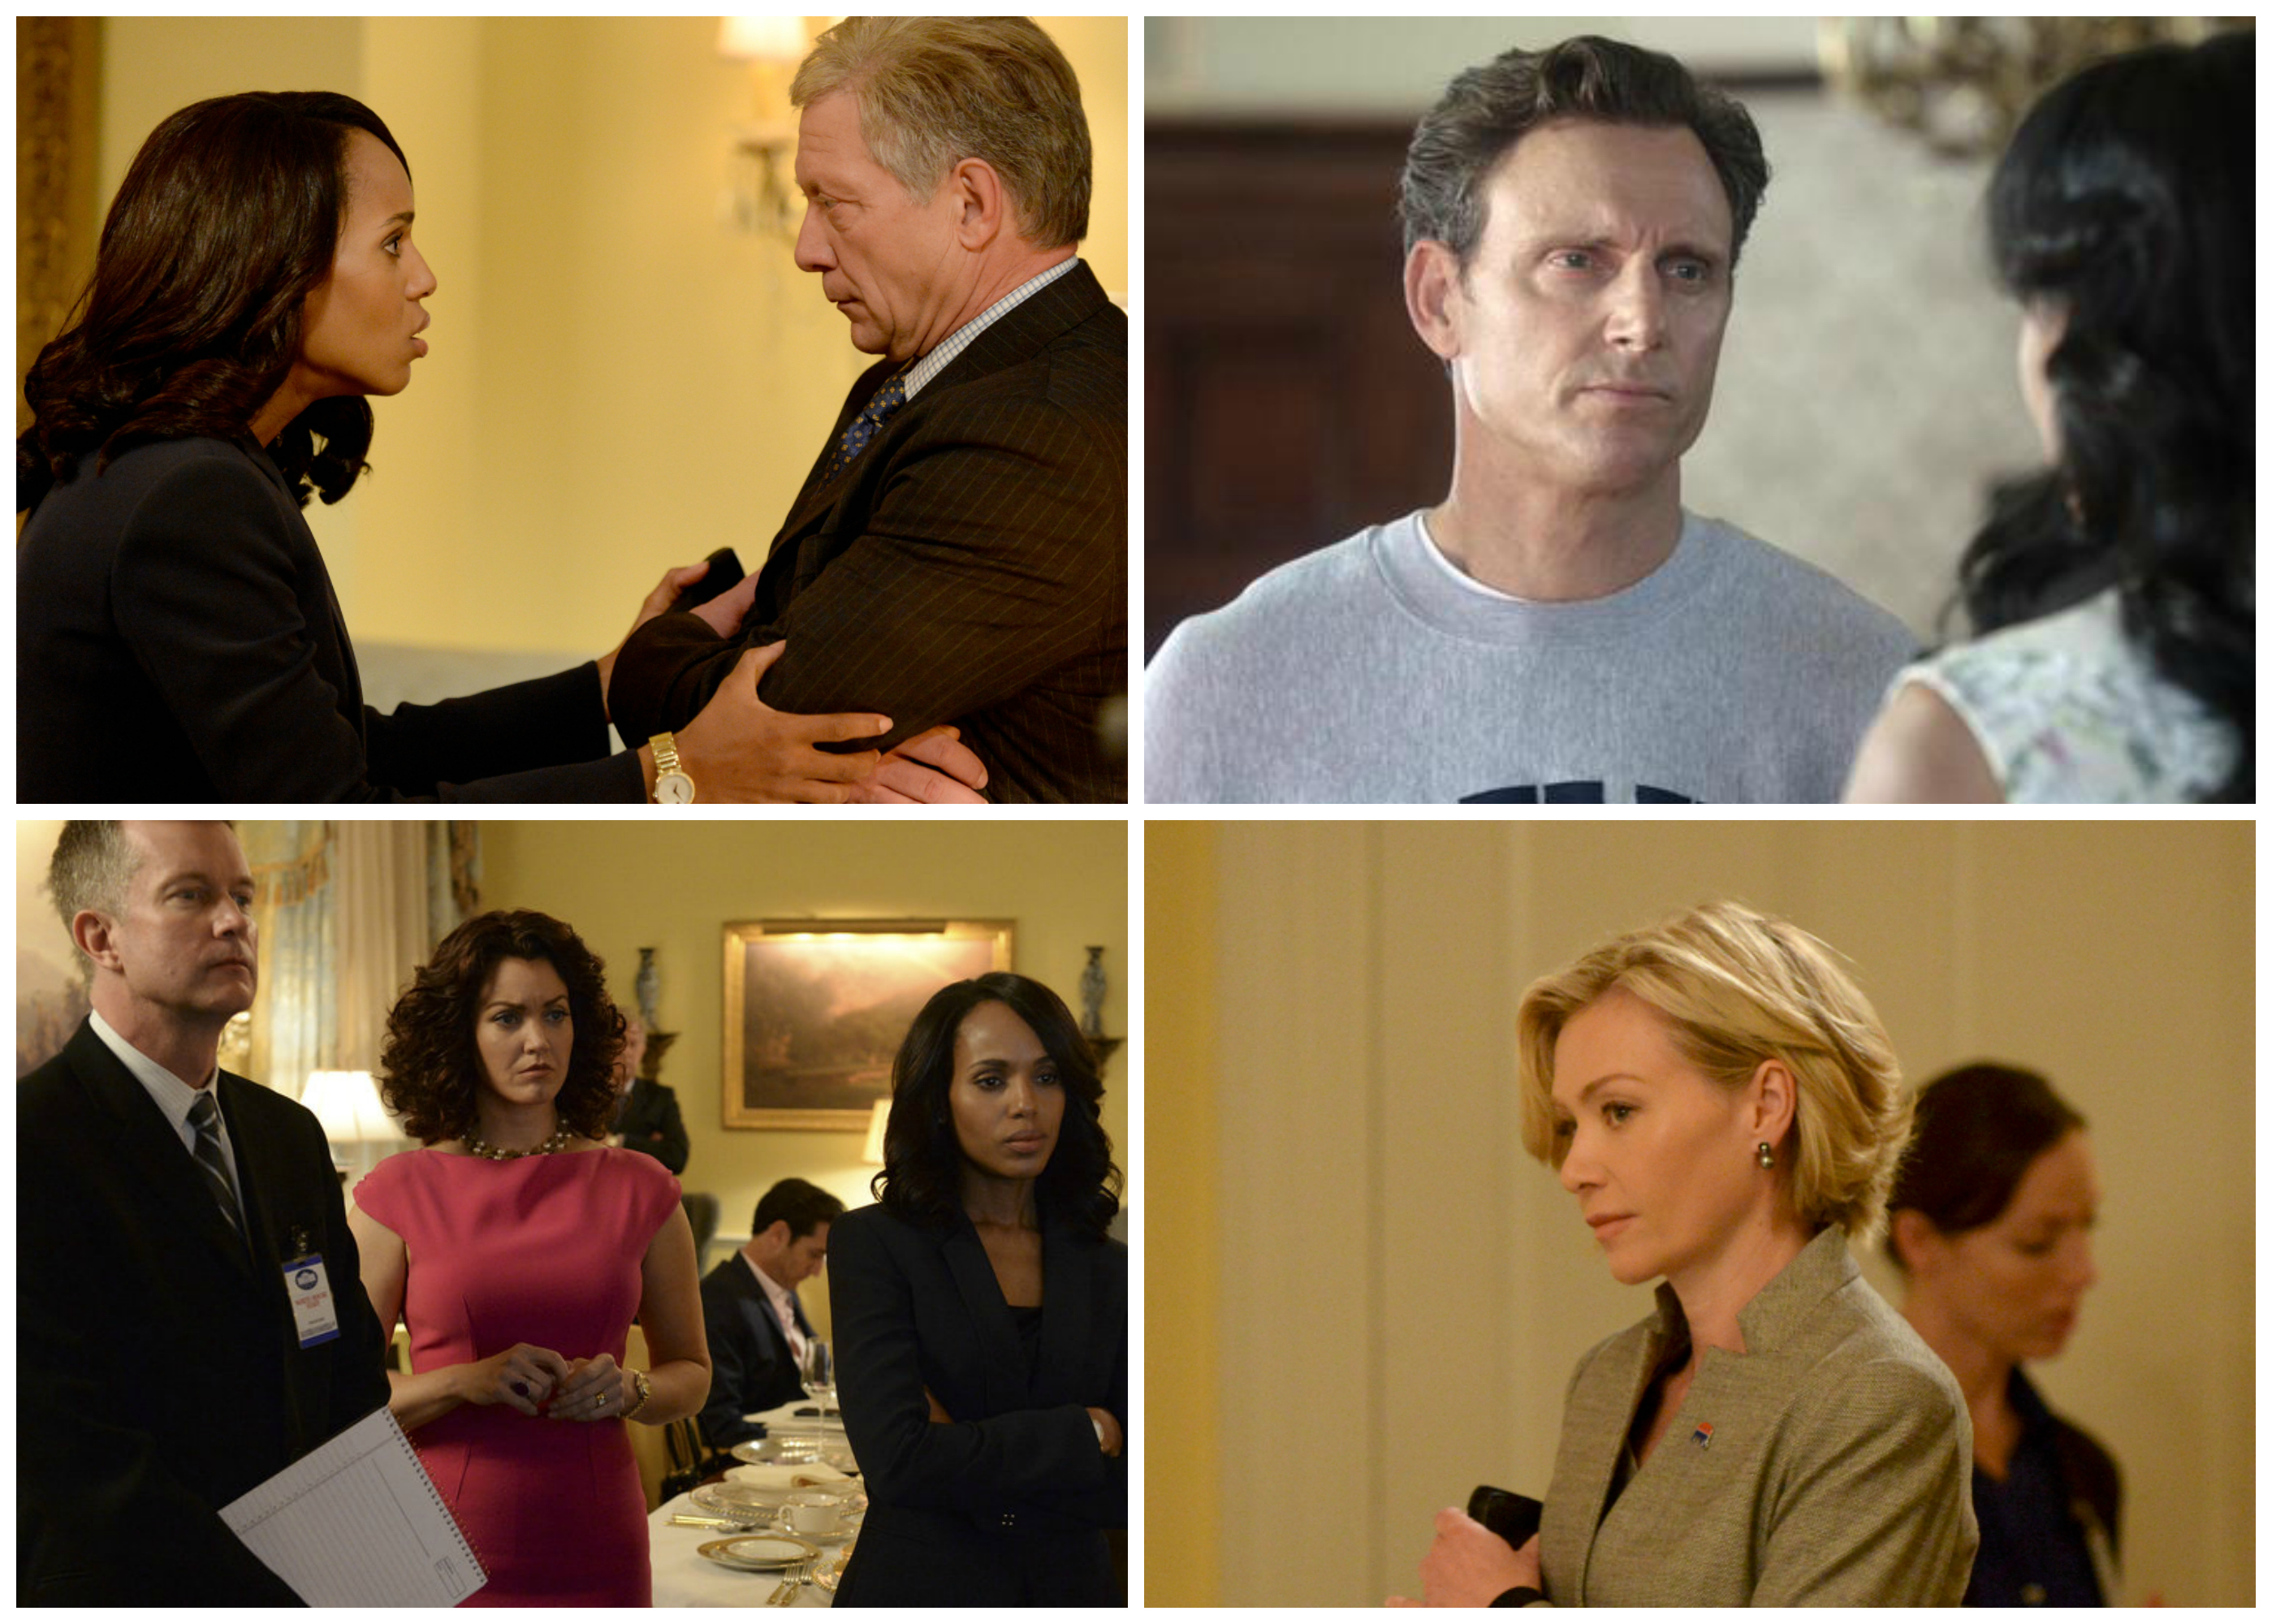 Episode 202: Scandal - S4E17 - Put a Ring on It